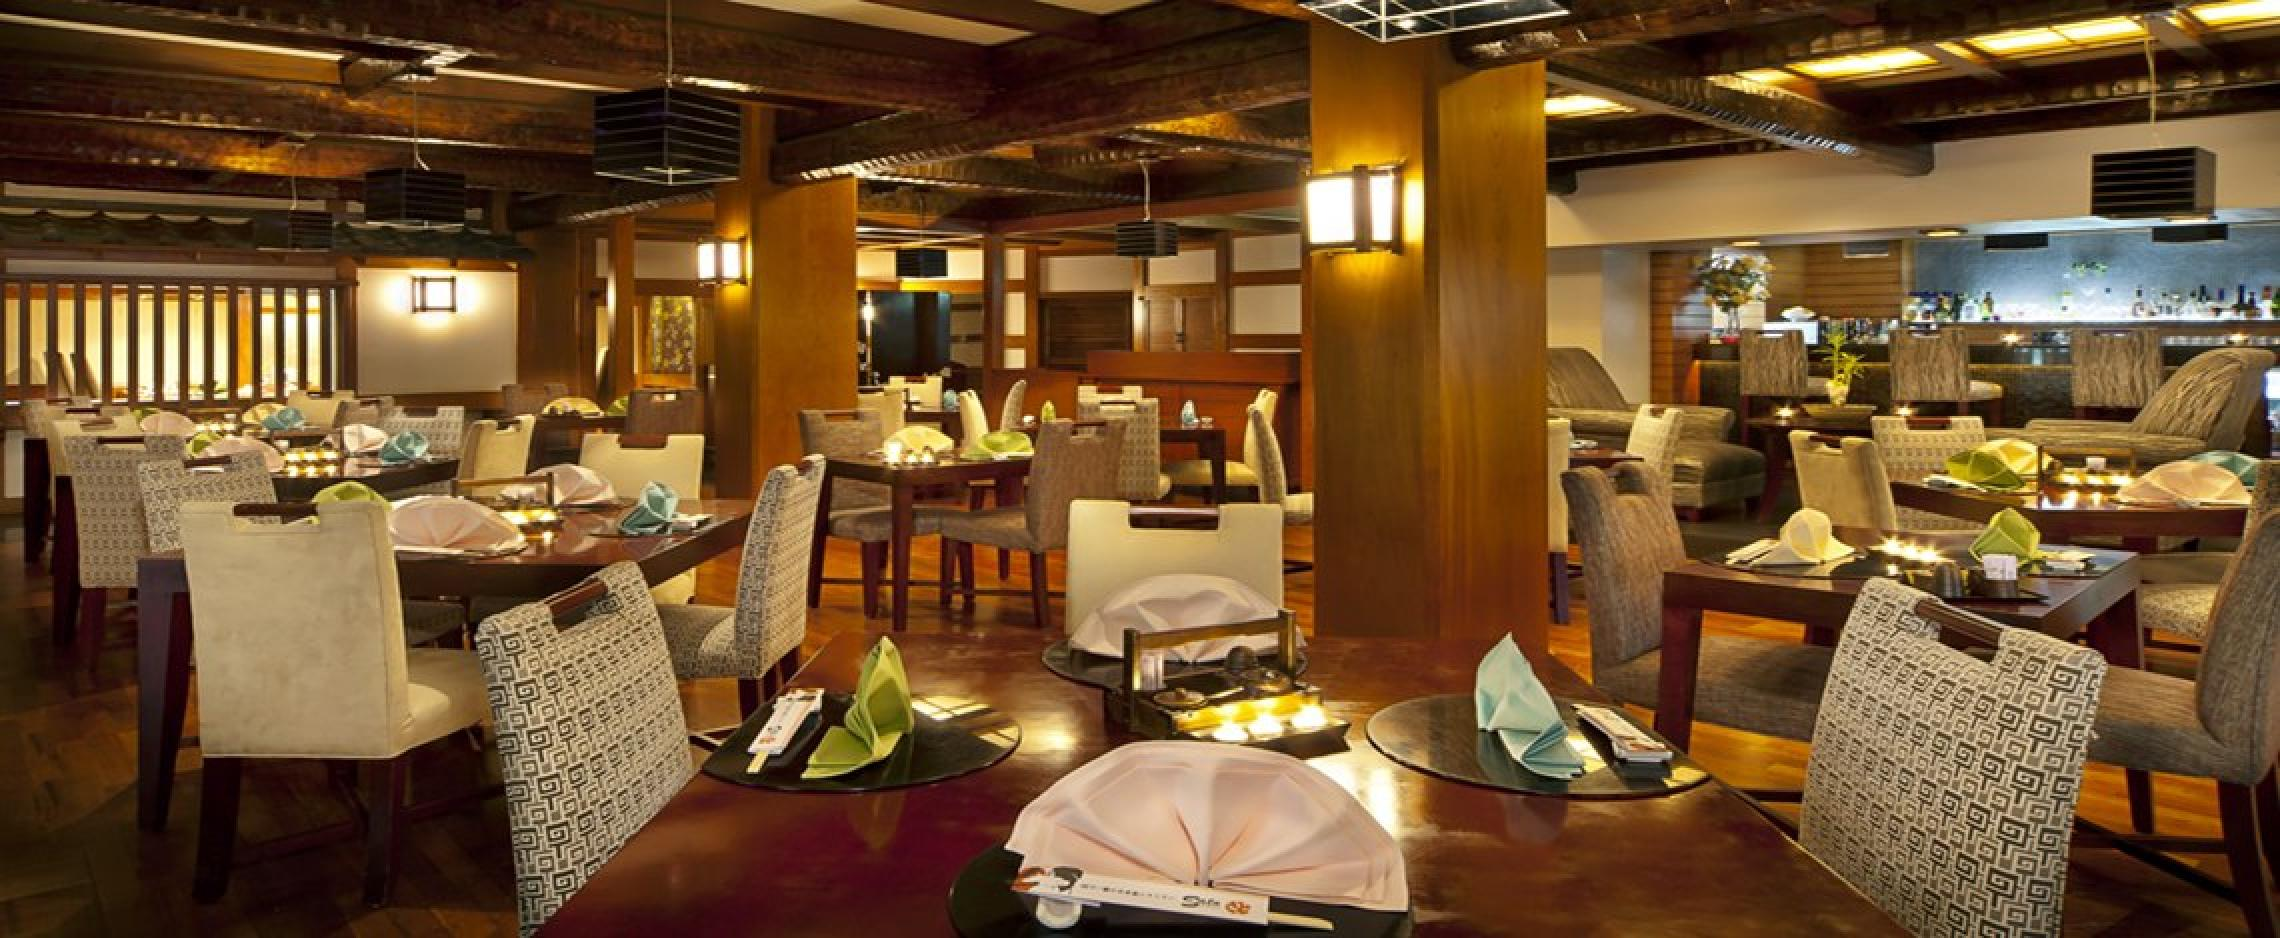 Sato luxury 5 star accomodation in bahrain the gulf for 0 5 japanese cuisine